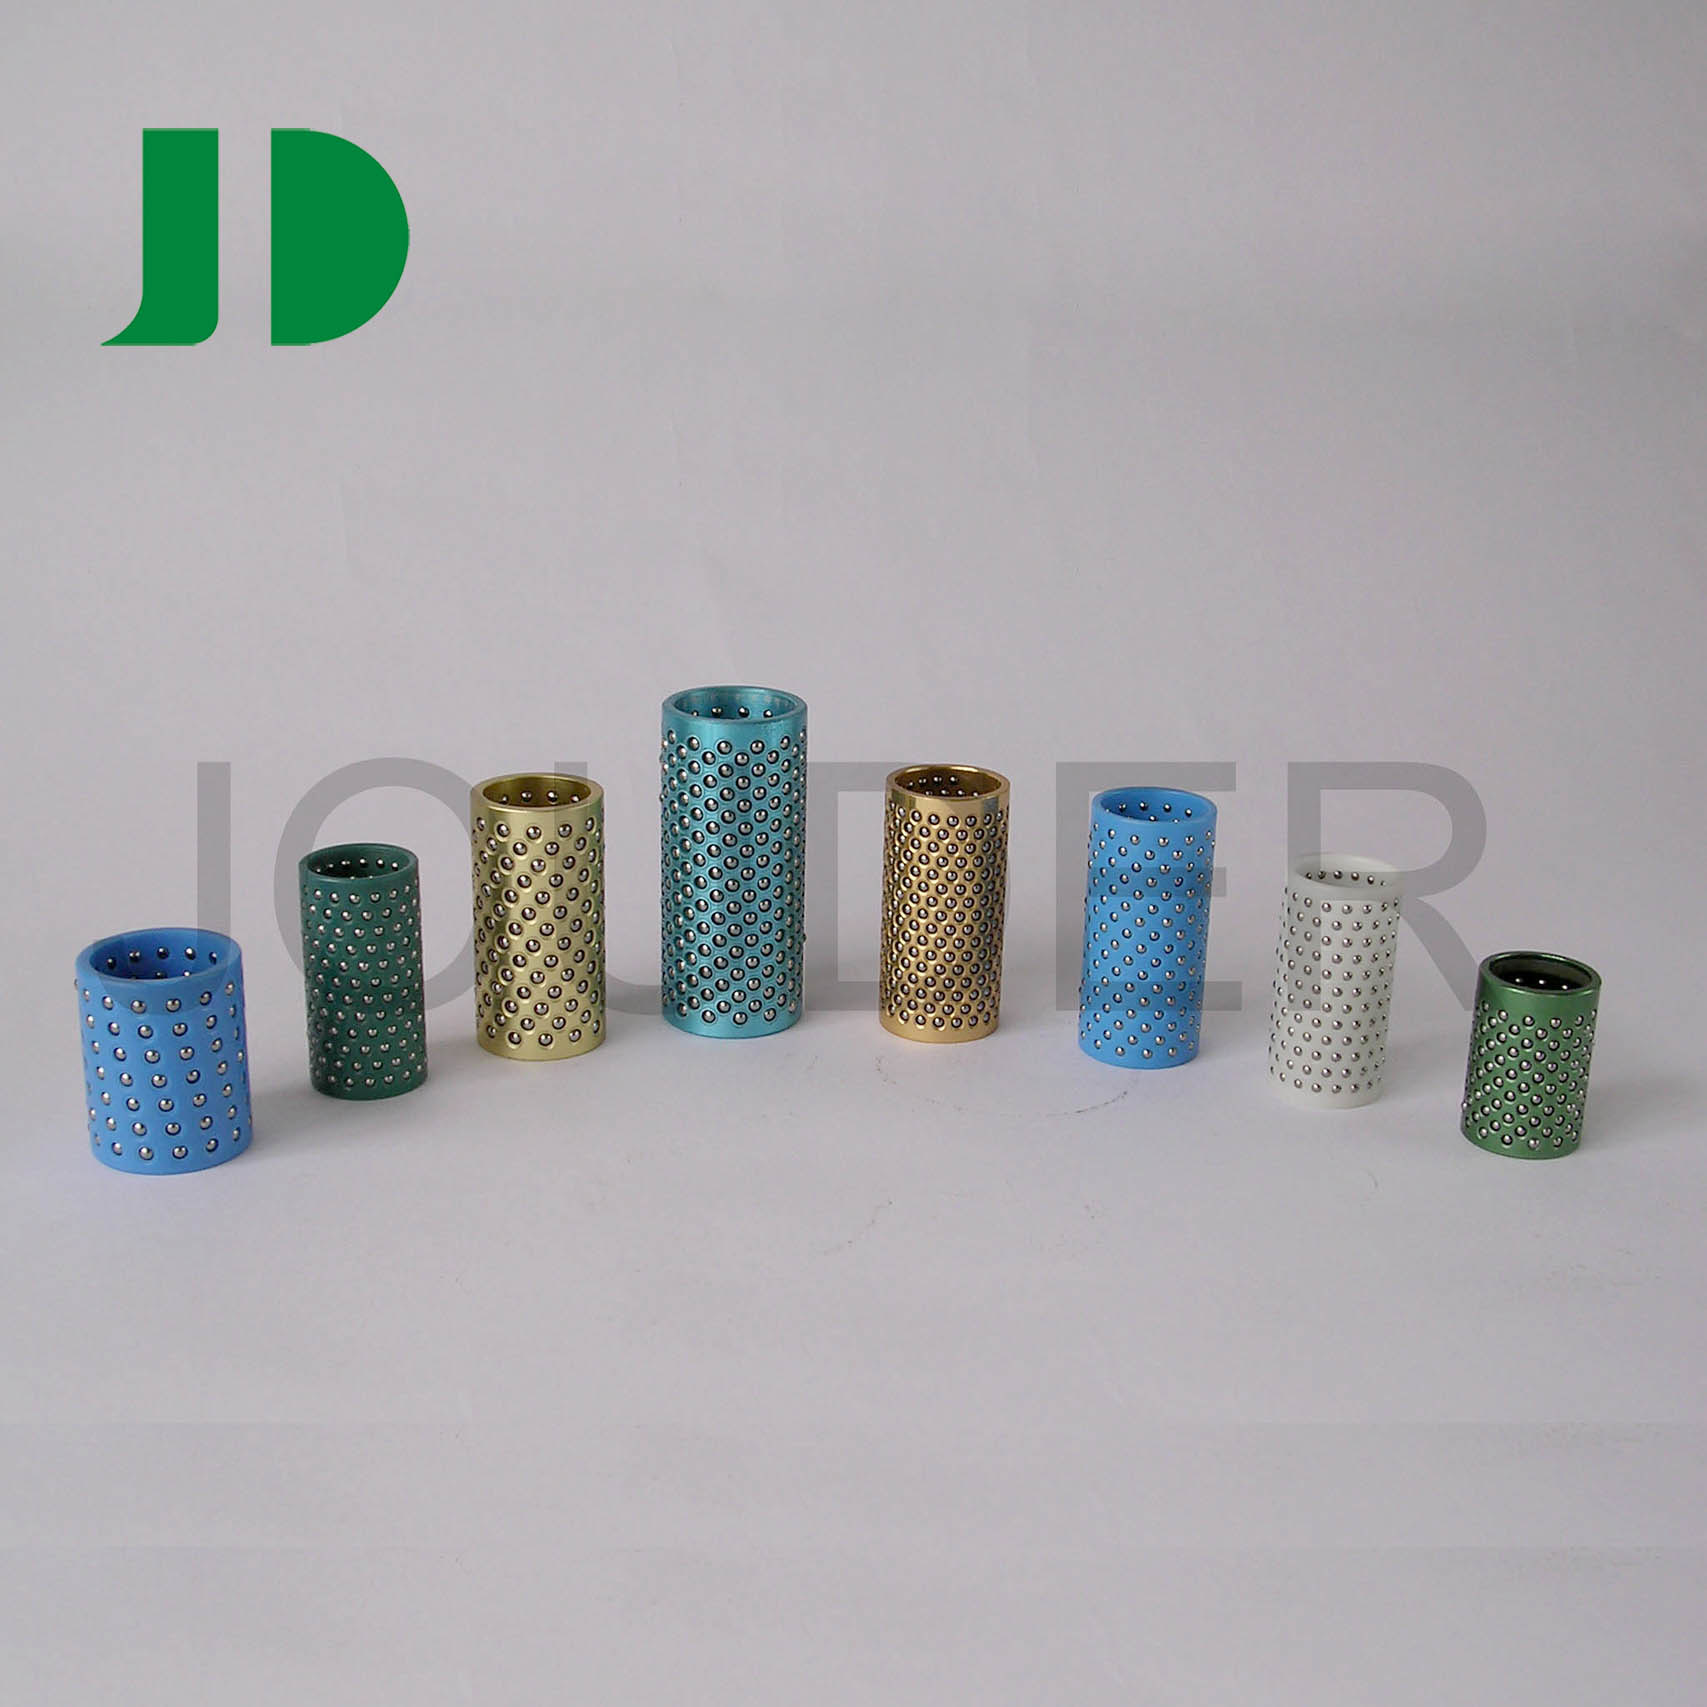 Ball Bearing Cage Made in Bronze or Aluminum or Plastic